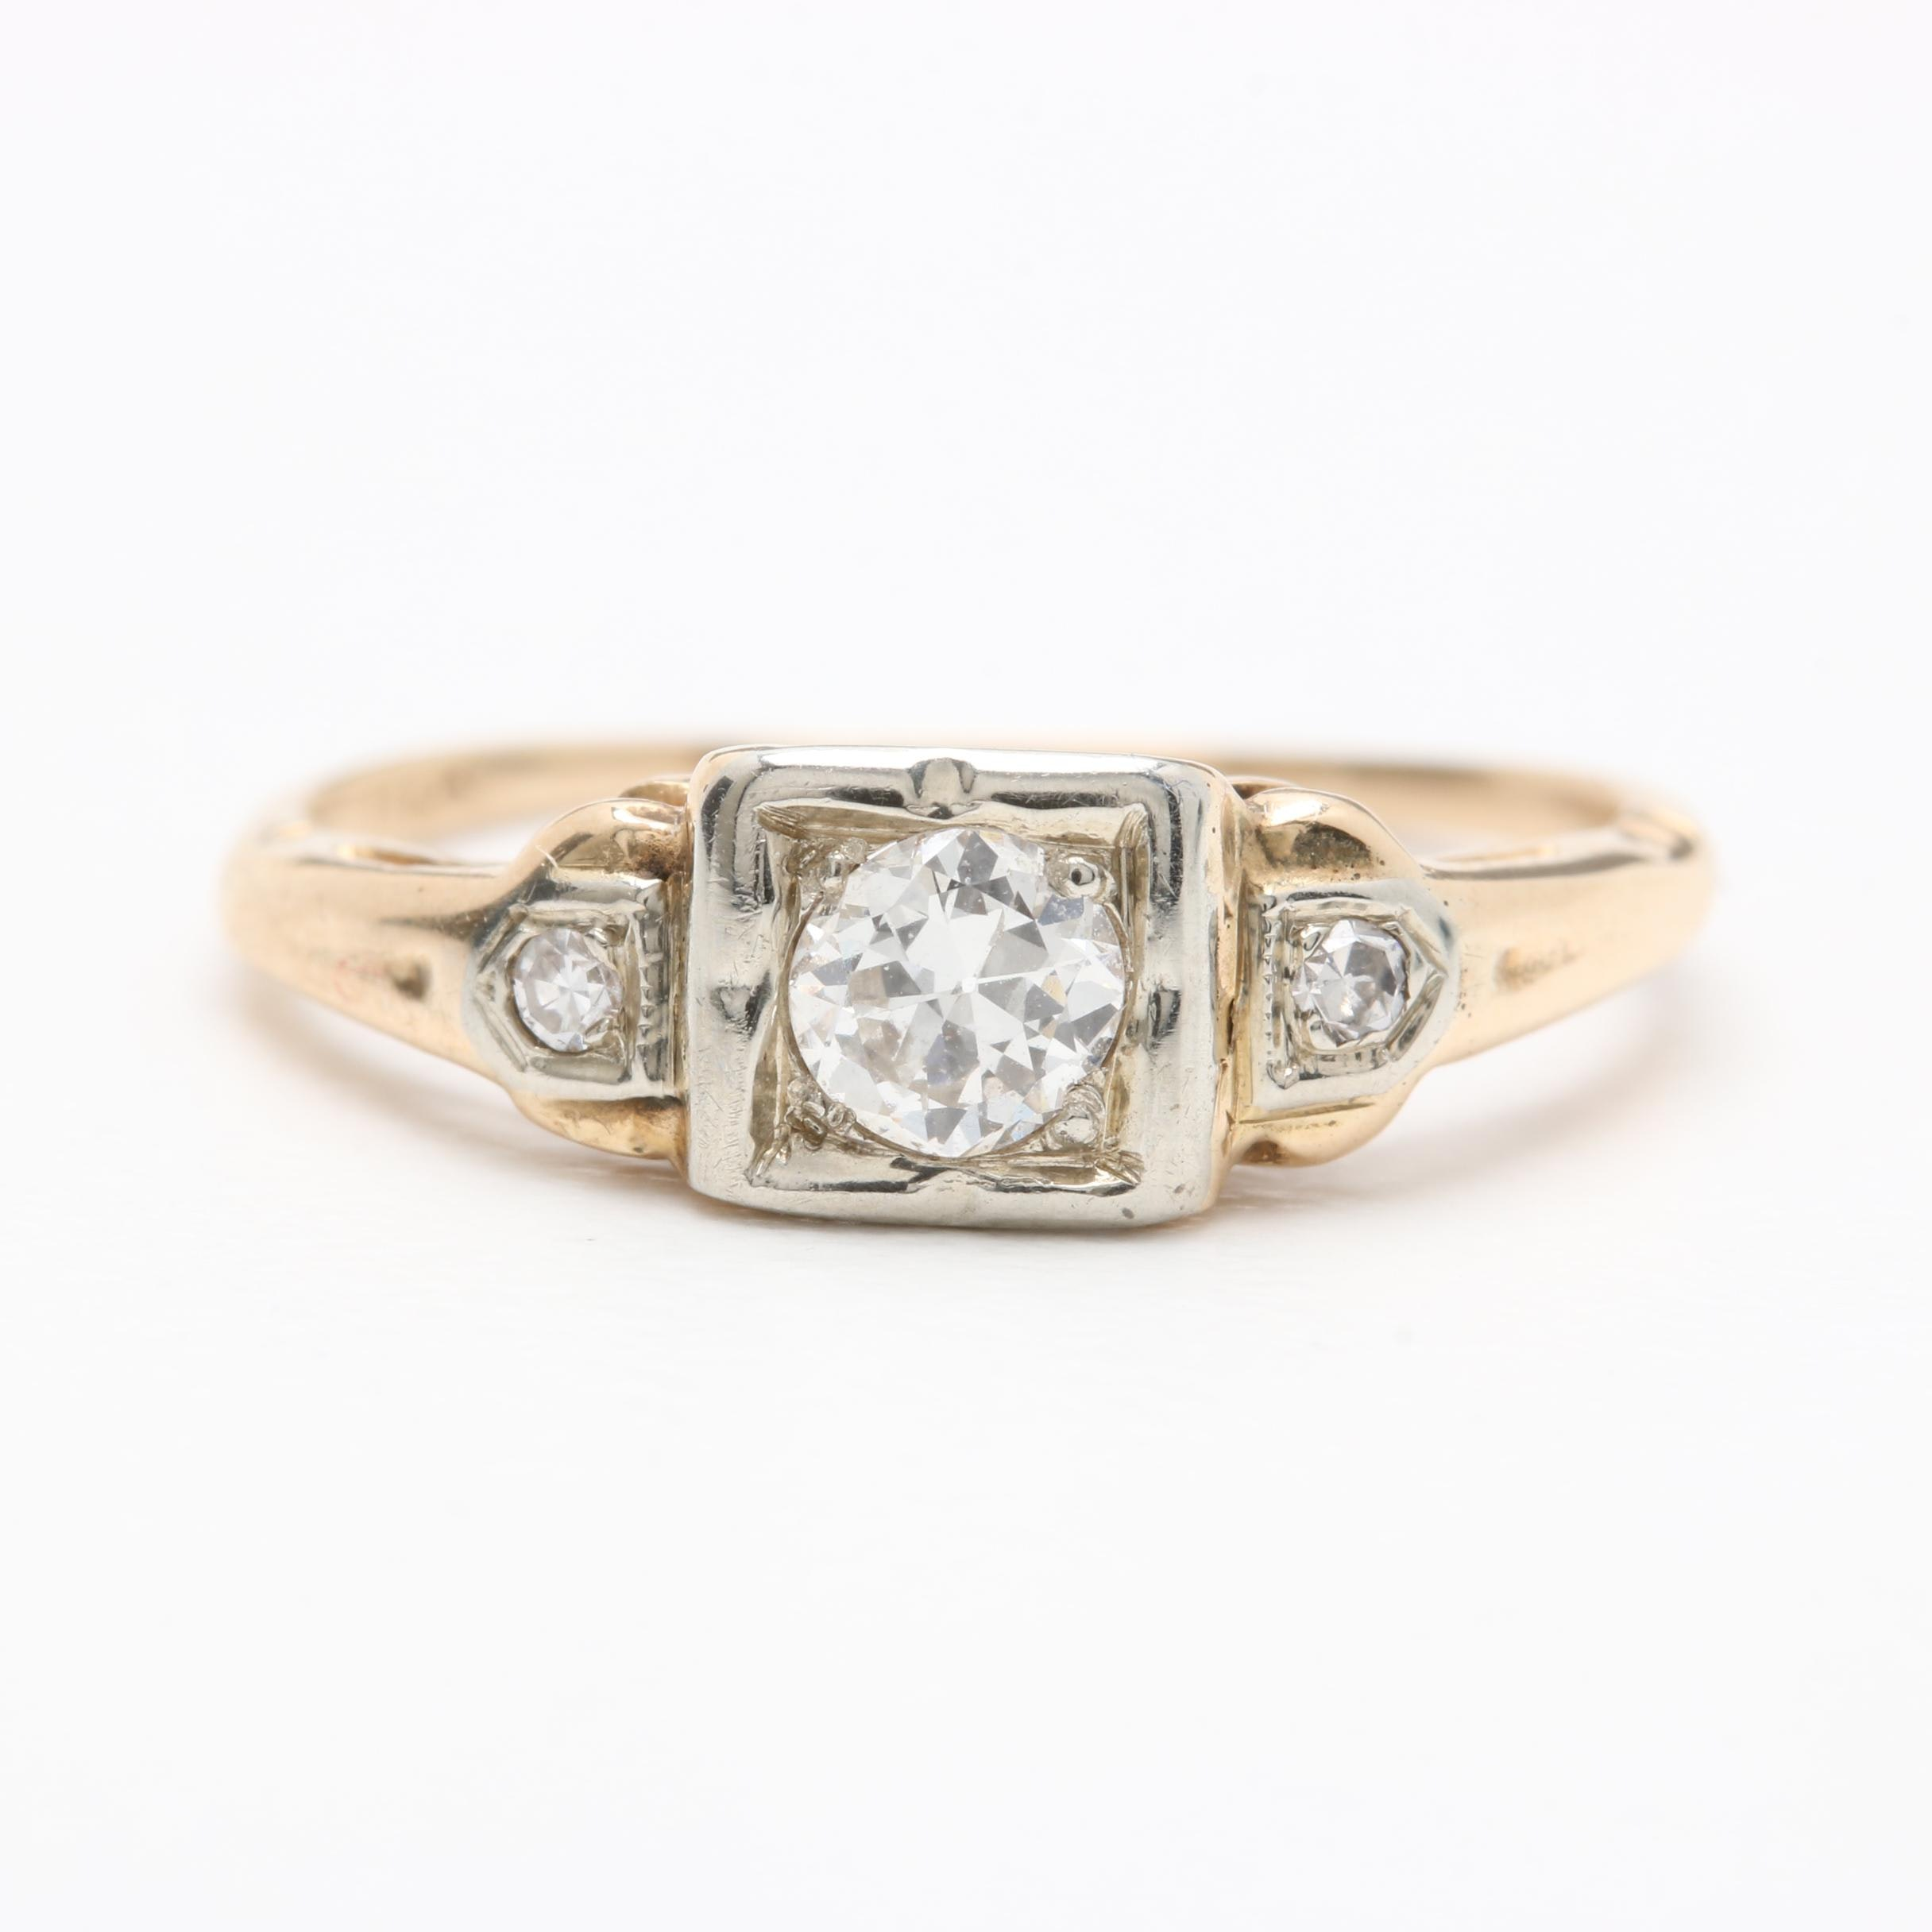 Circa 1930s 14K Yellow Gold Diamond Ring with White Gold Accents